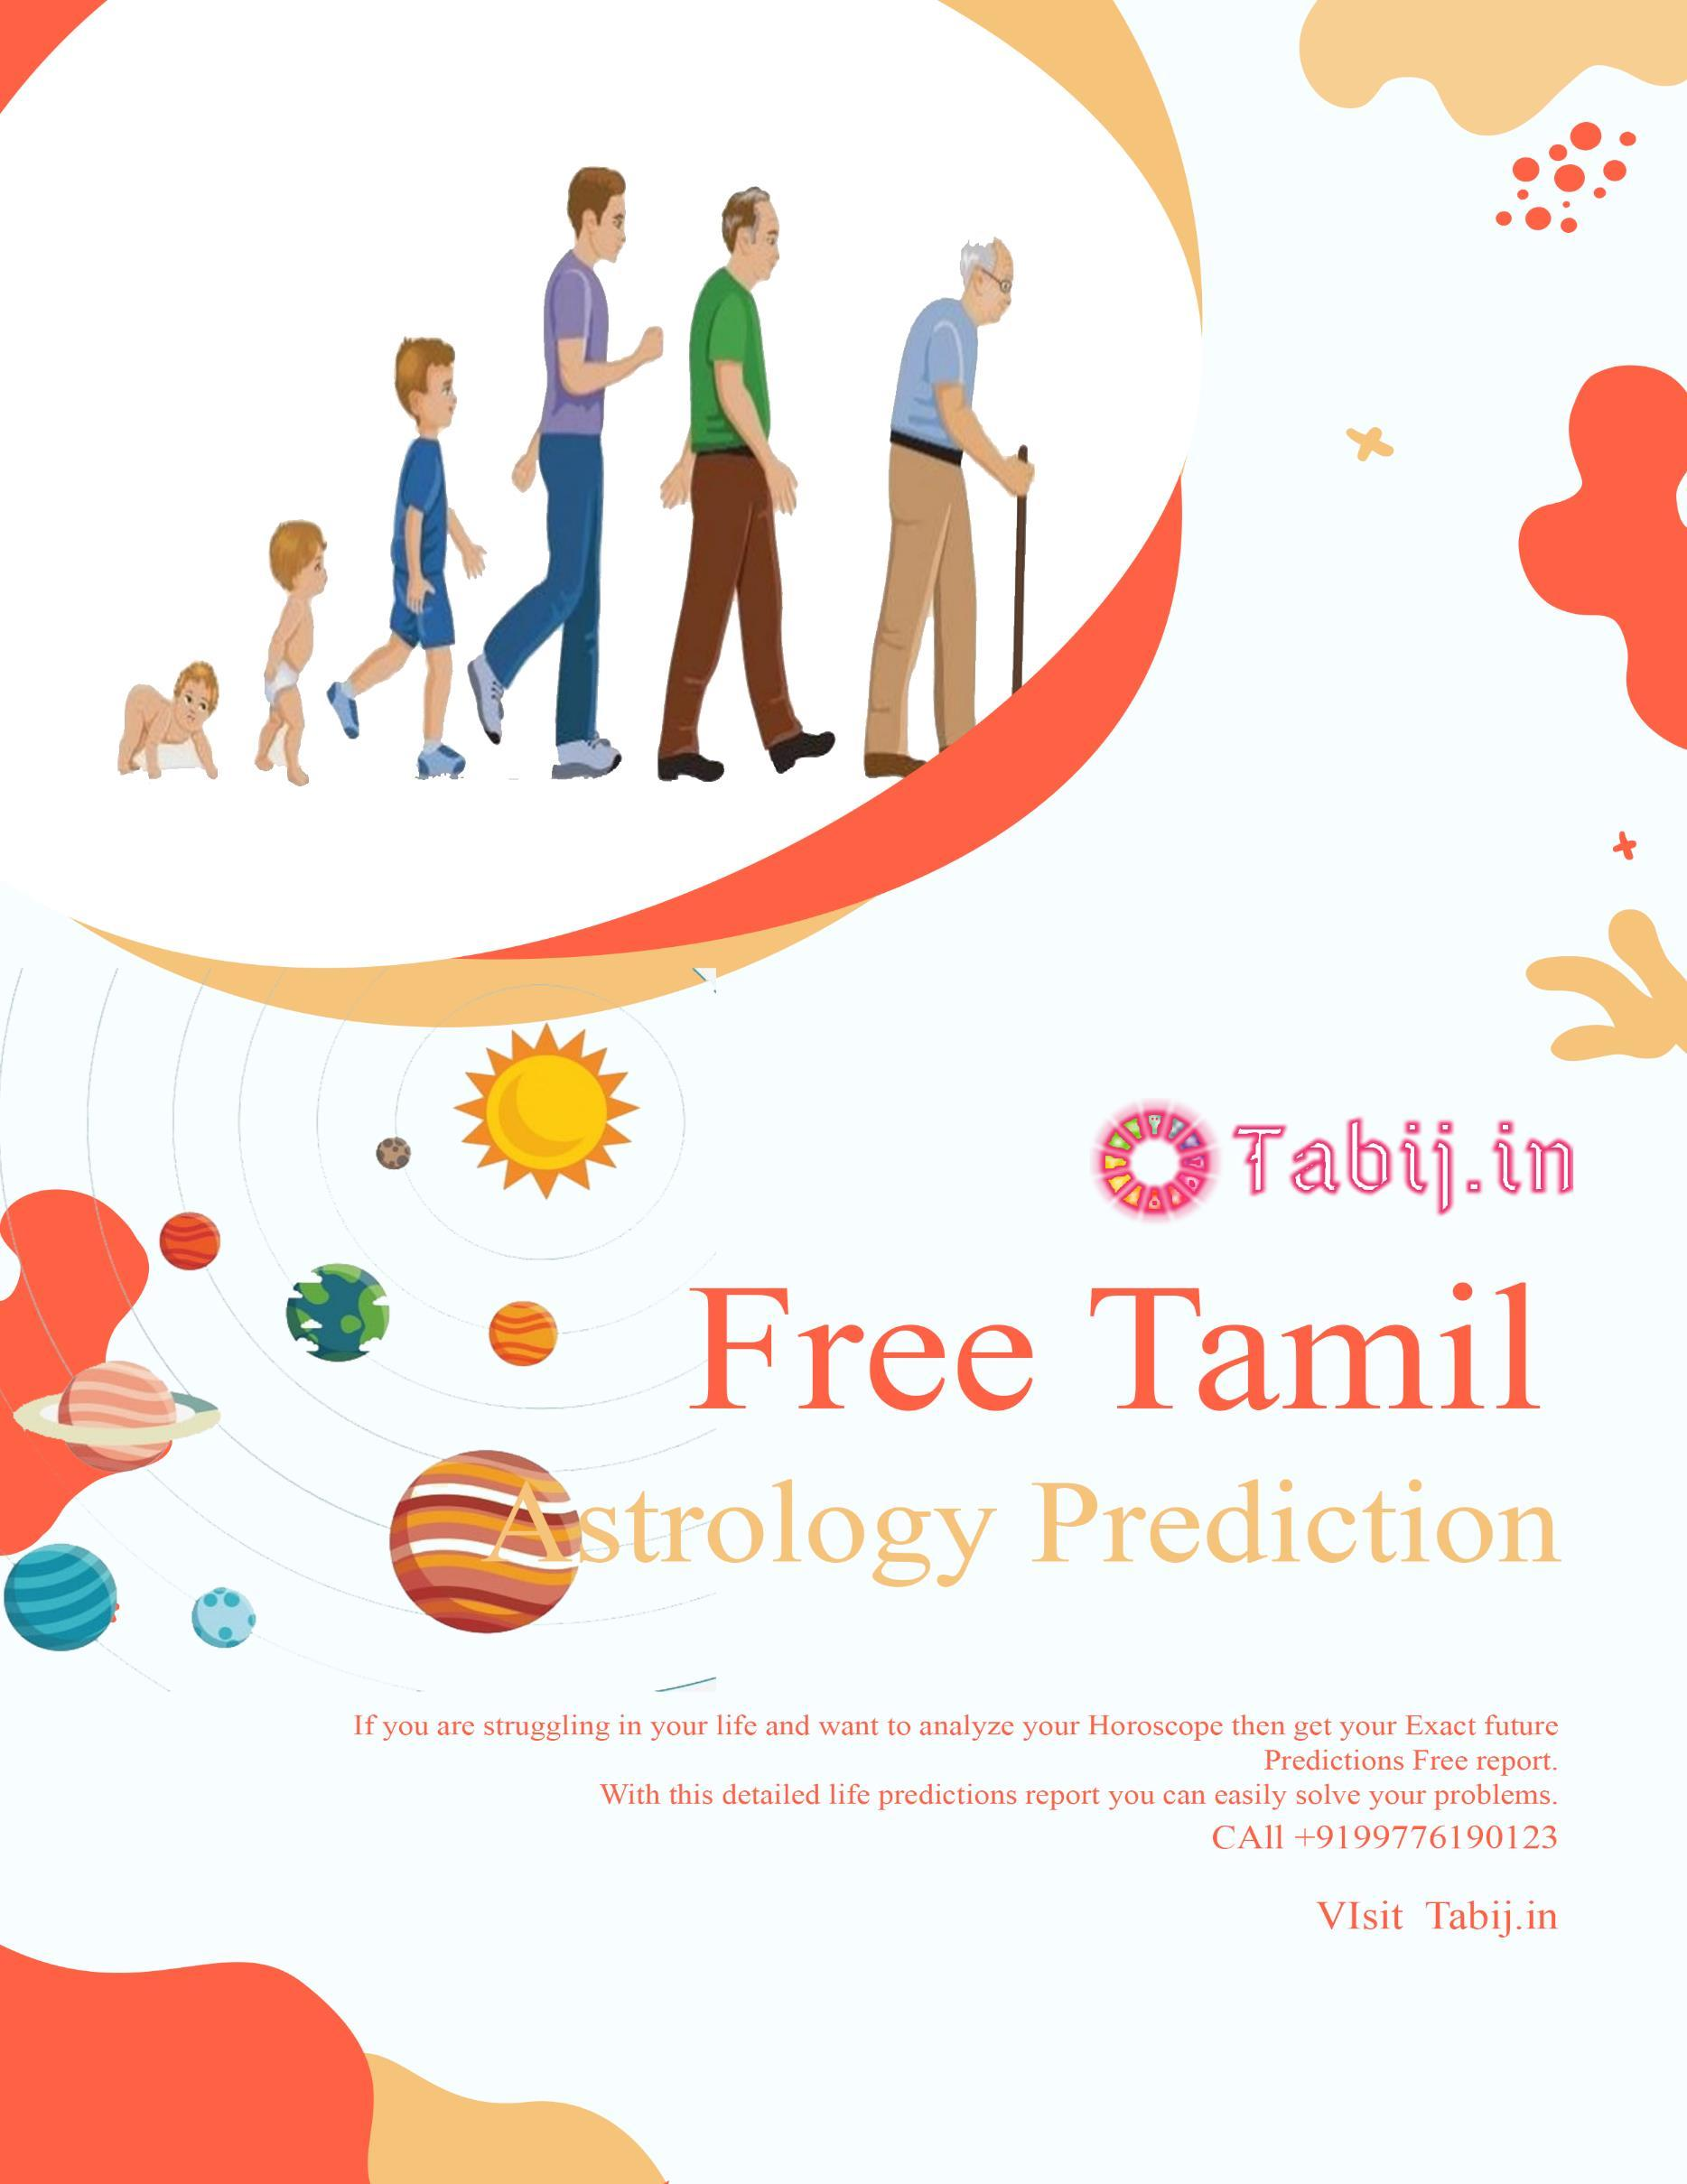 Free Tamil astrology: Get accurate full life prediction by